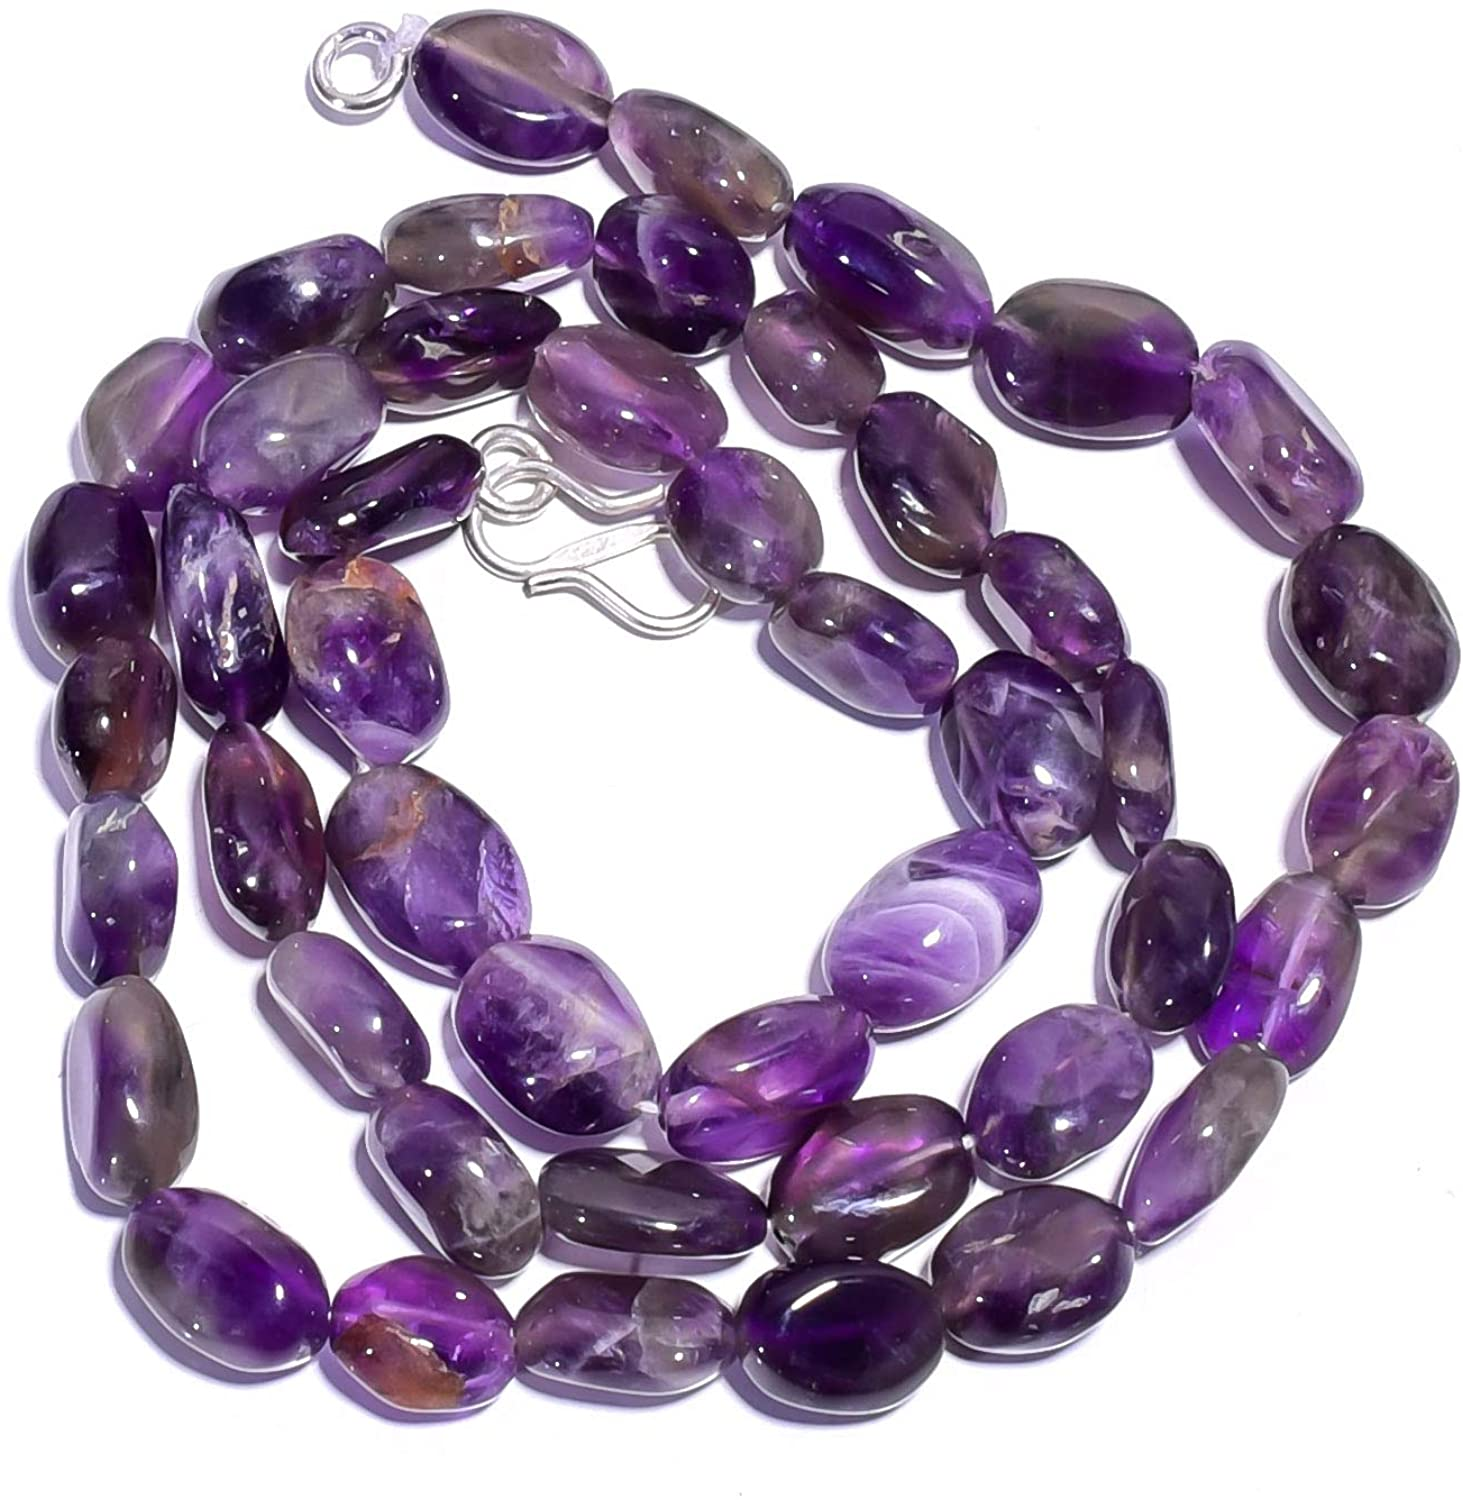 Unique Beads Natural Chevron Amethyst Gemstone Oval Smooth Beads Necklace 17